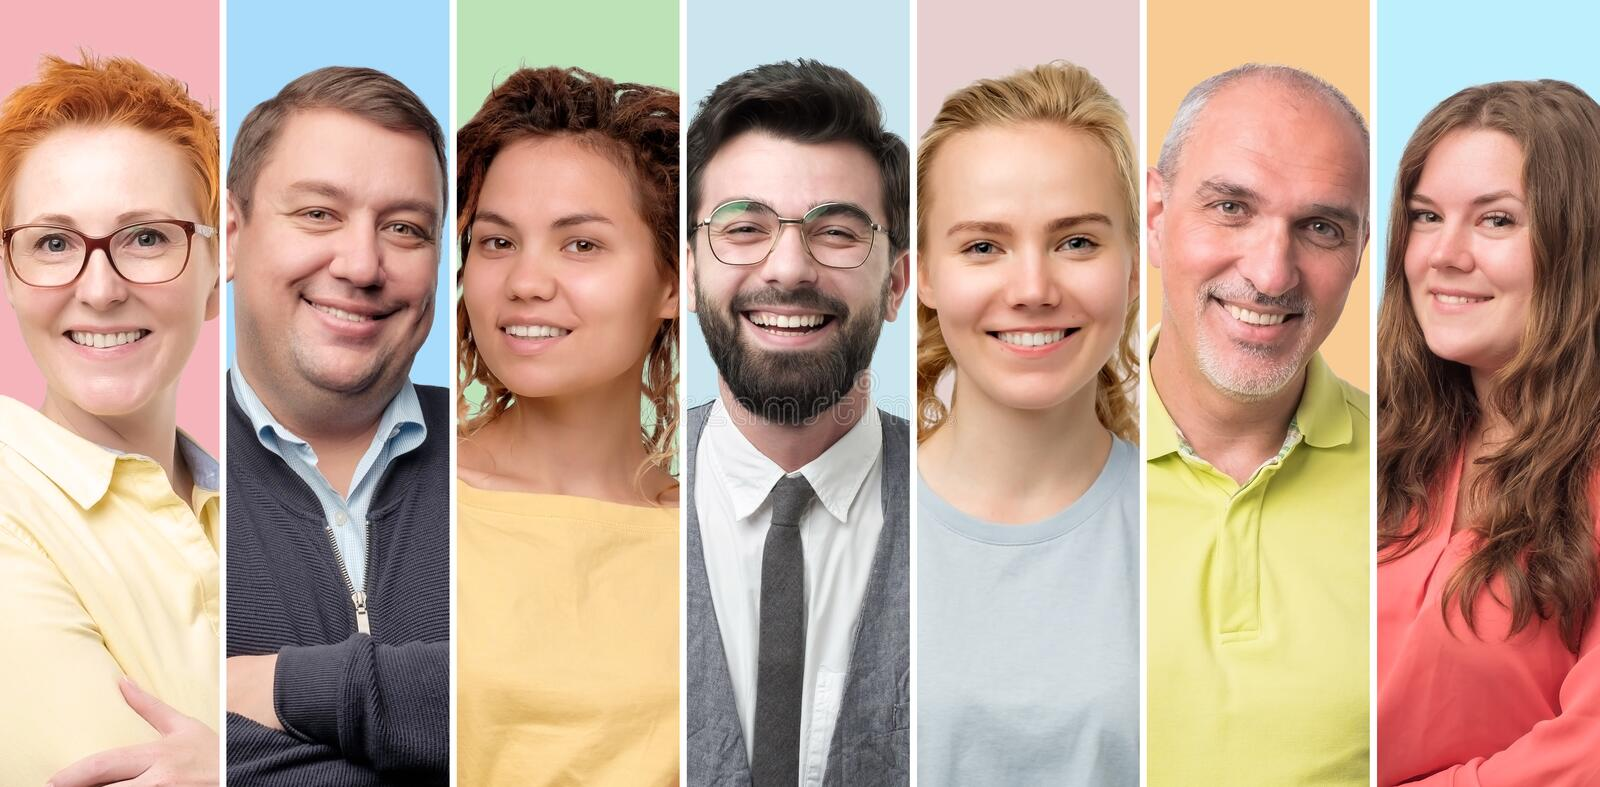 European men and women smiling at camera being self confident. royalty free stock photography